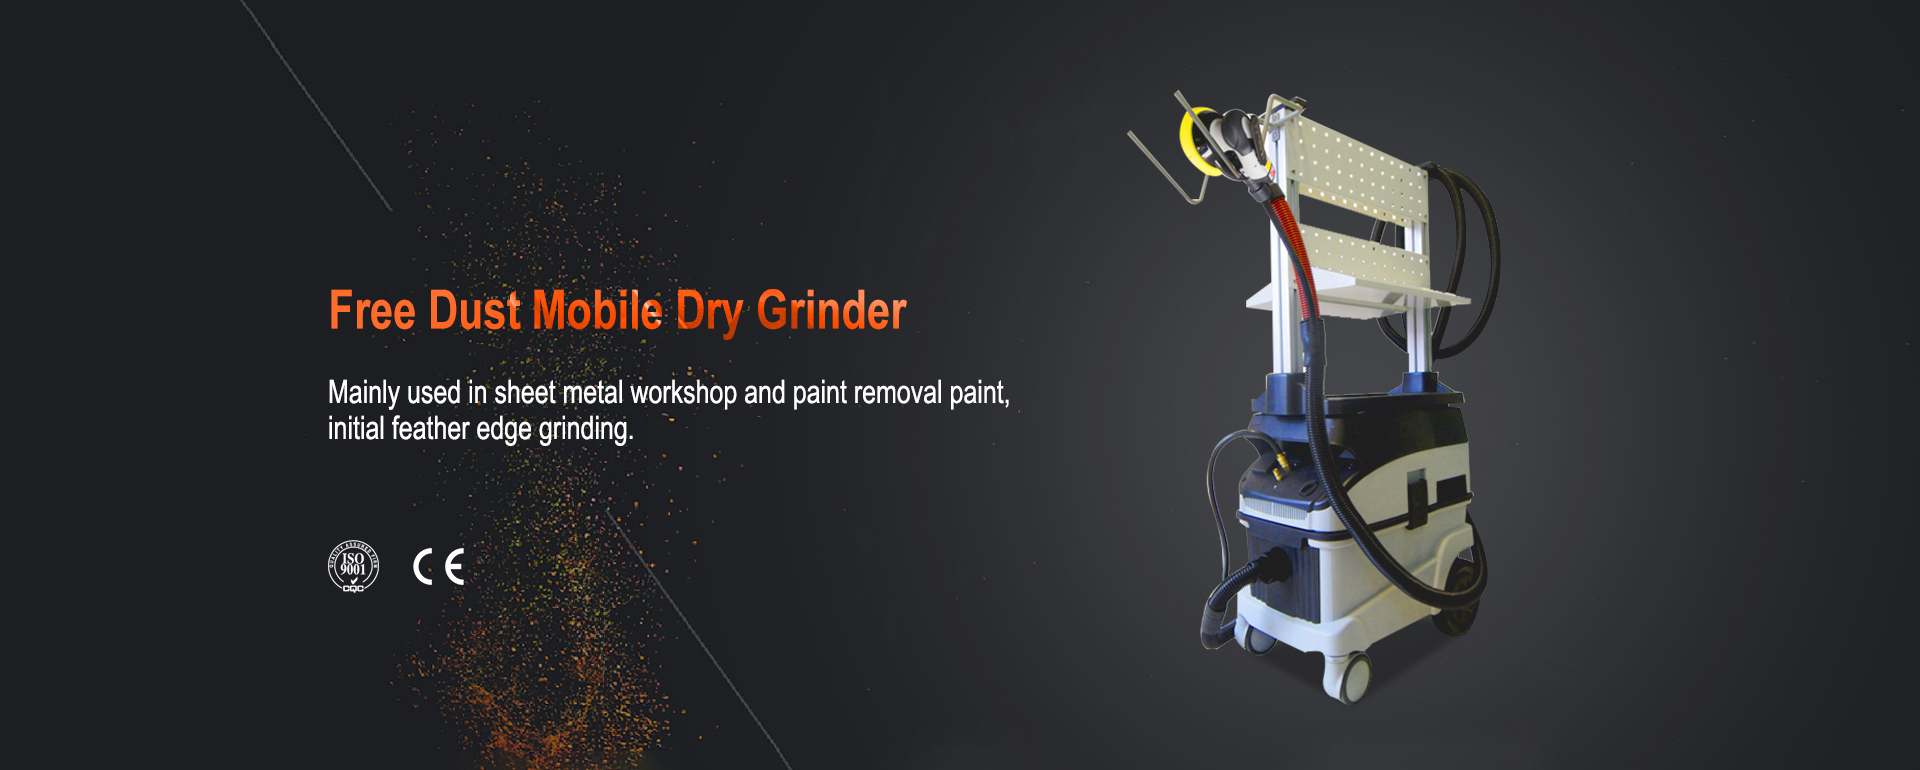 XYS Free Dust Mobile Dry Grinder